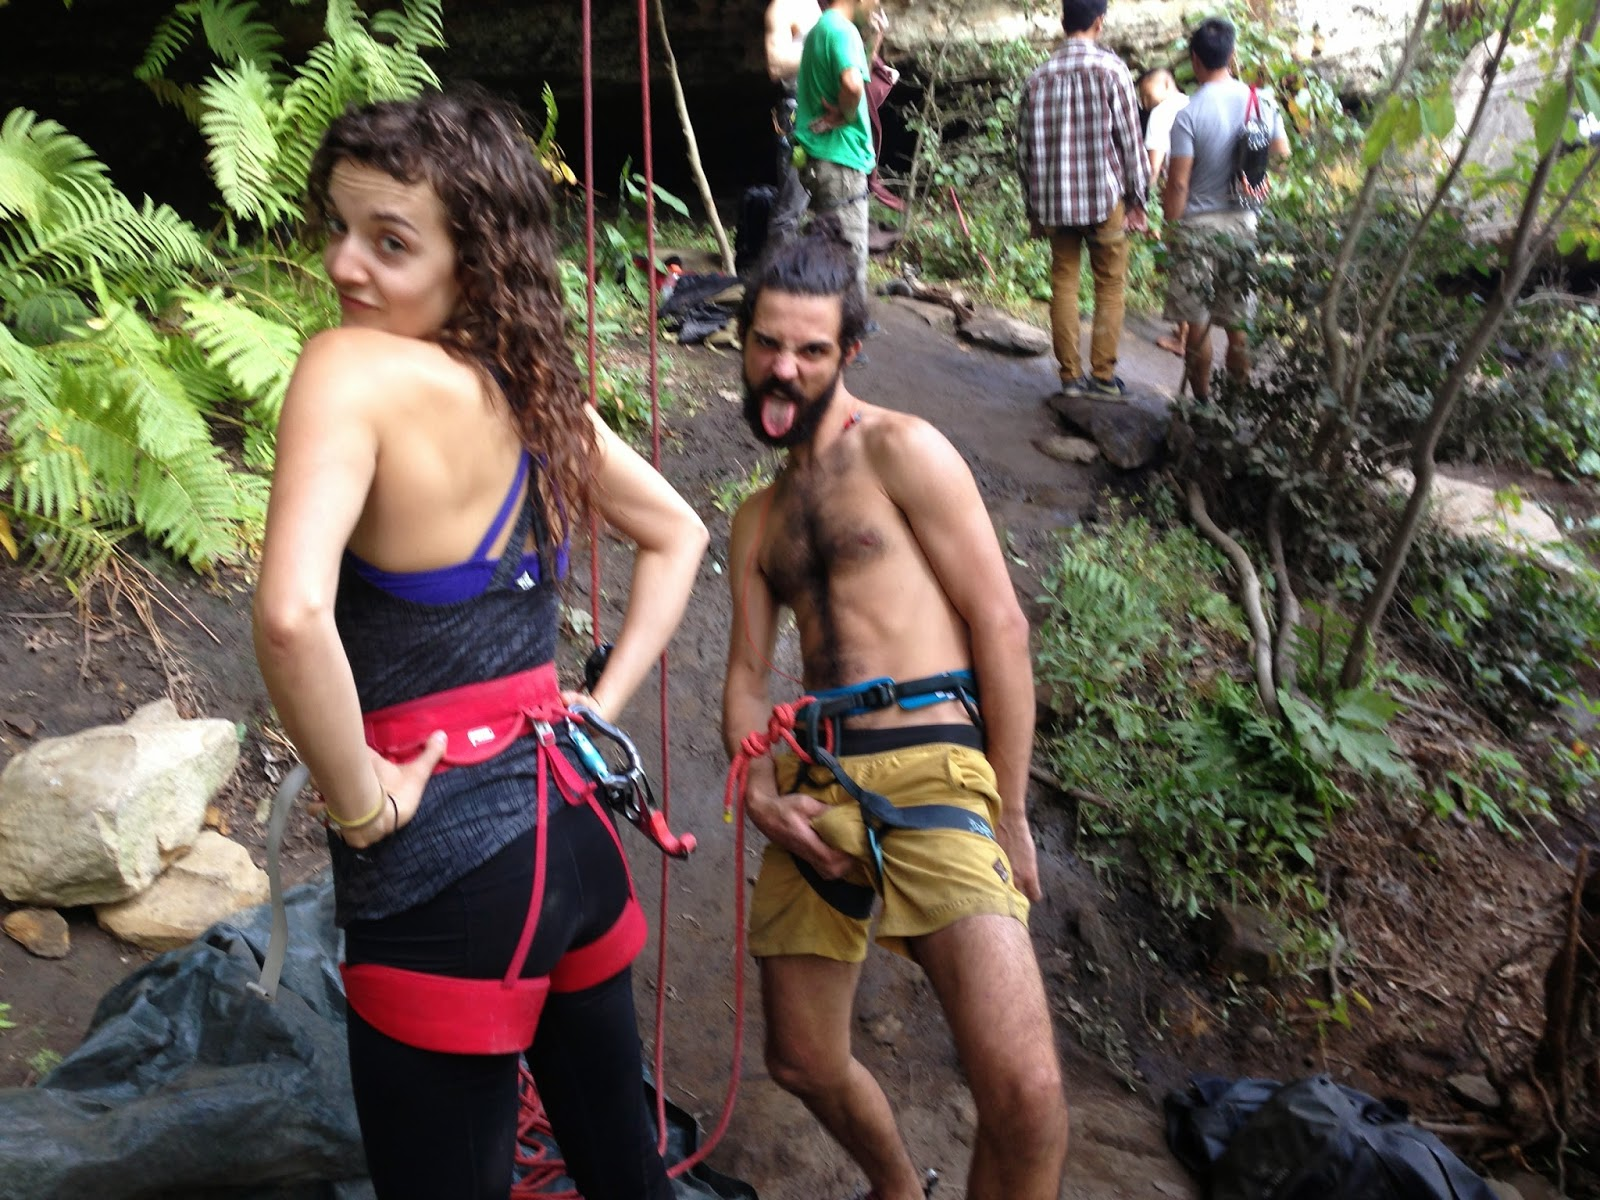 Rock climbing in harness naked